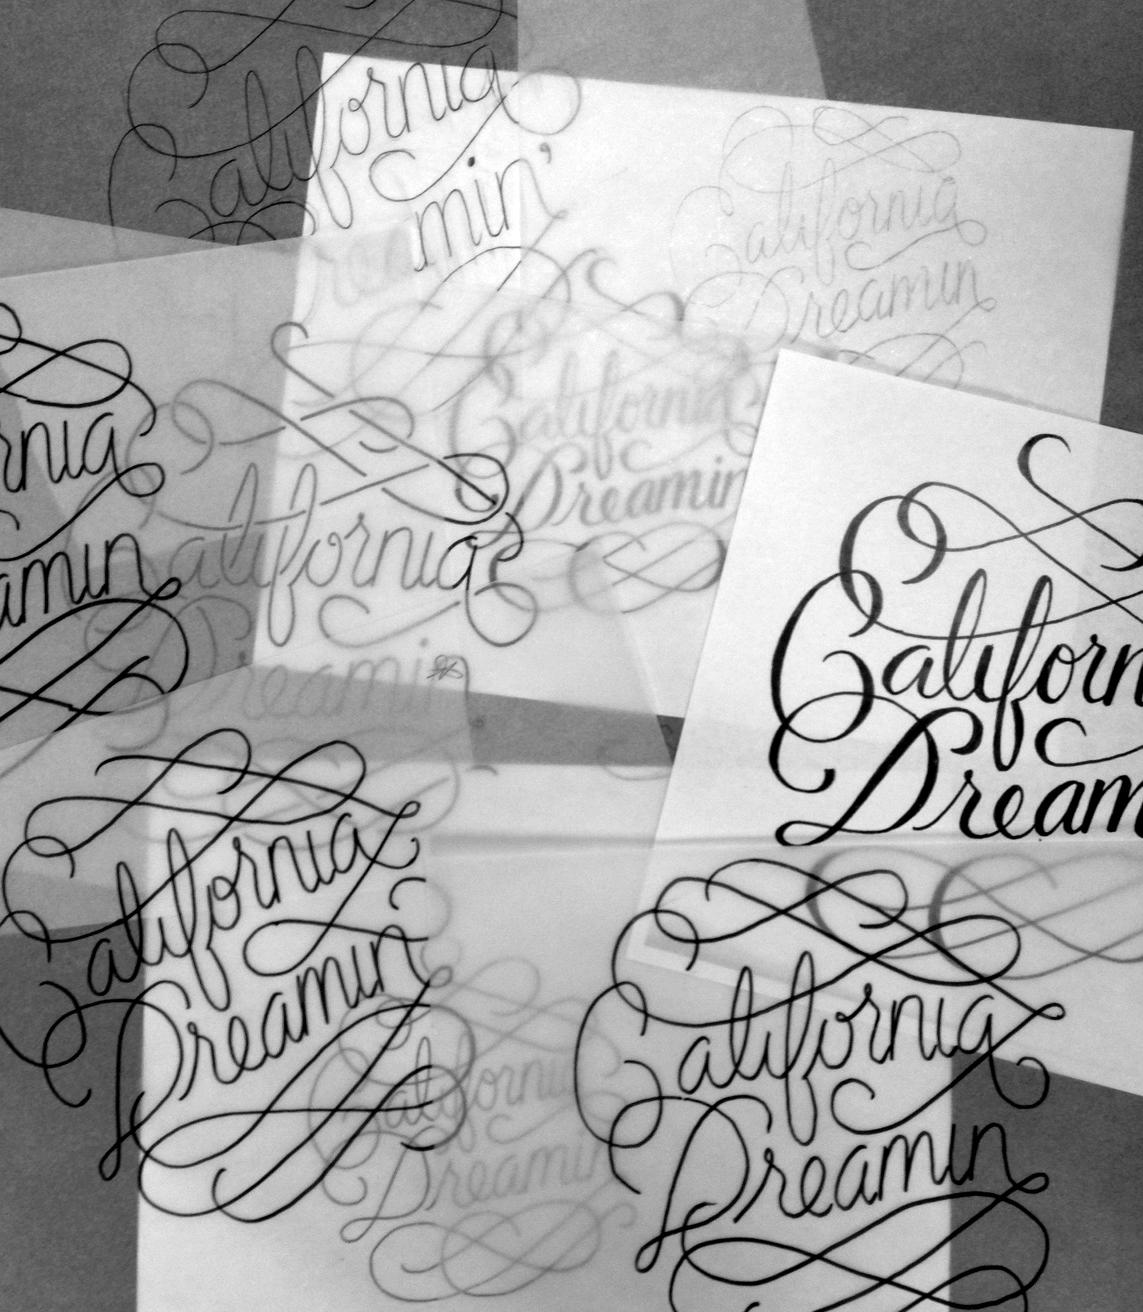 California Dreamin - image 7 - student project